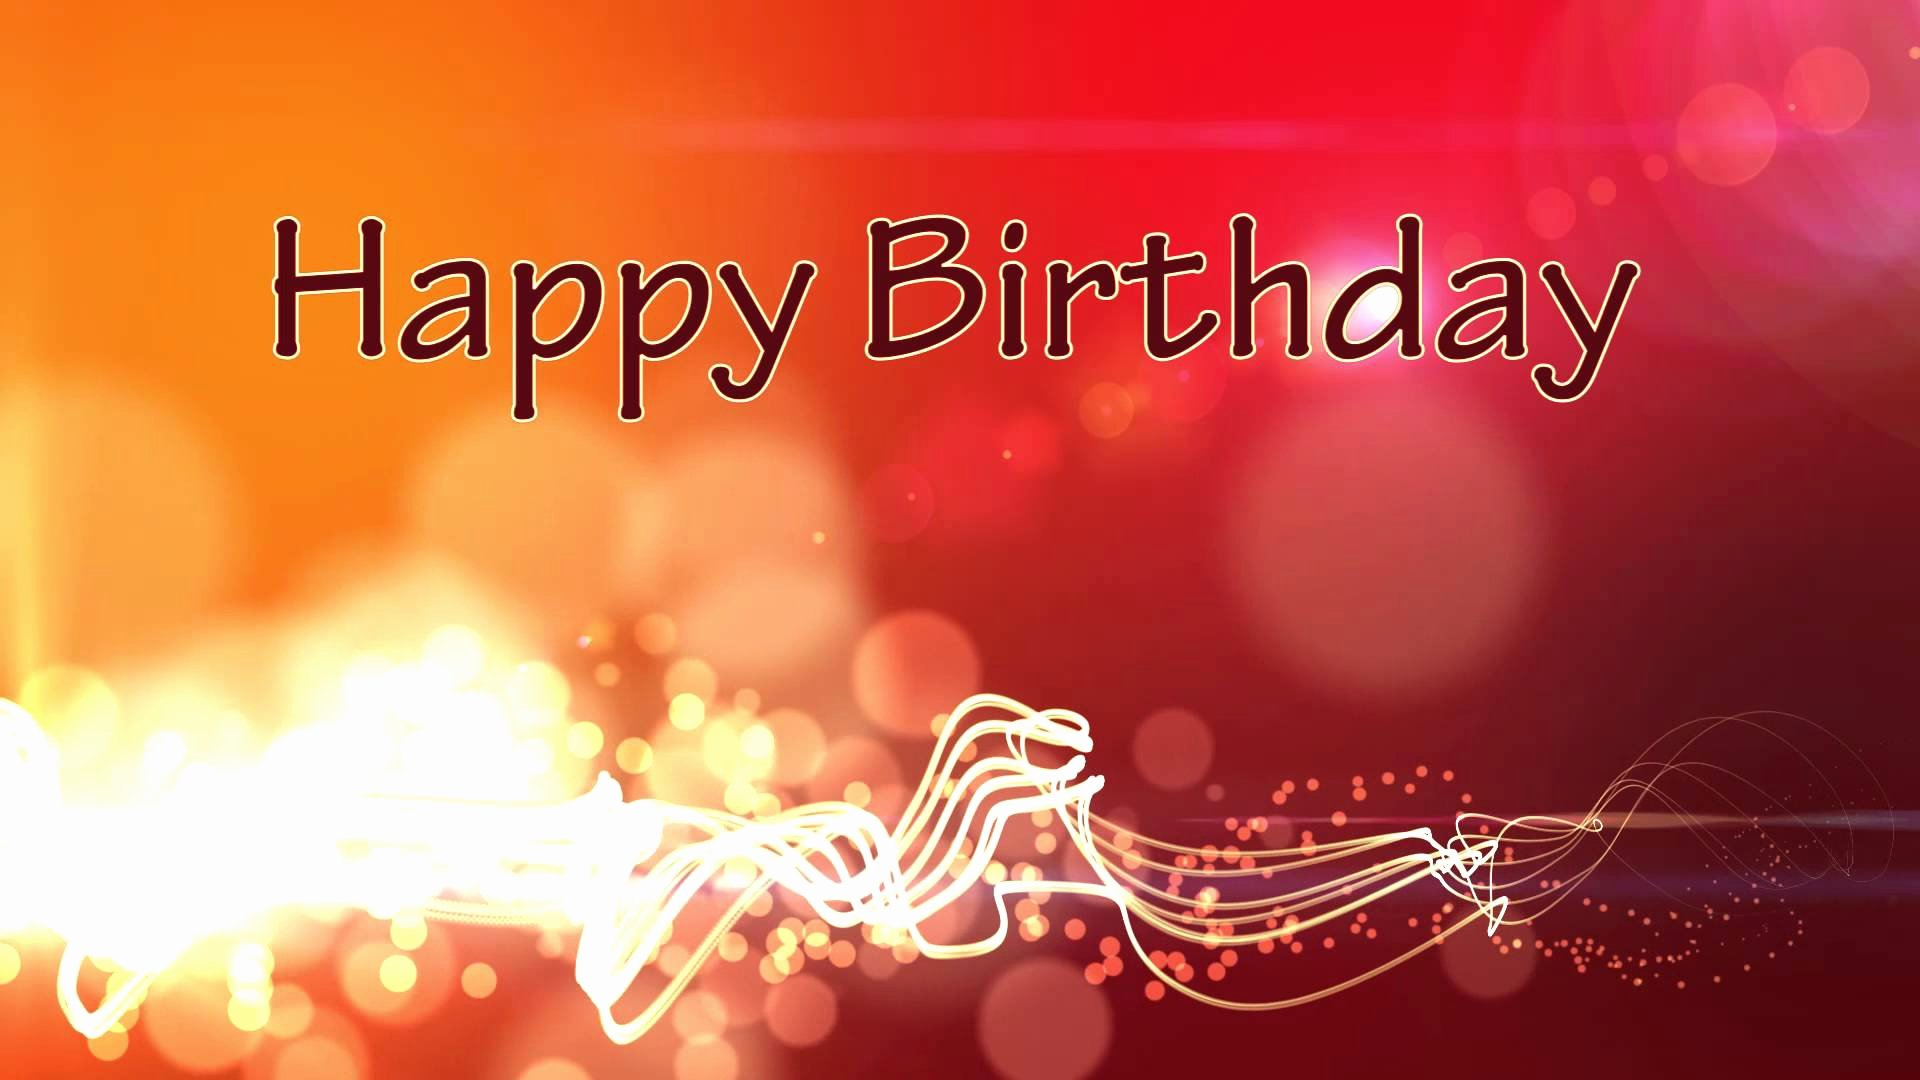 Happy Birthday Background Images Luxury Happy Birthday Wallpaper Hd